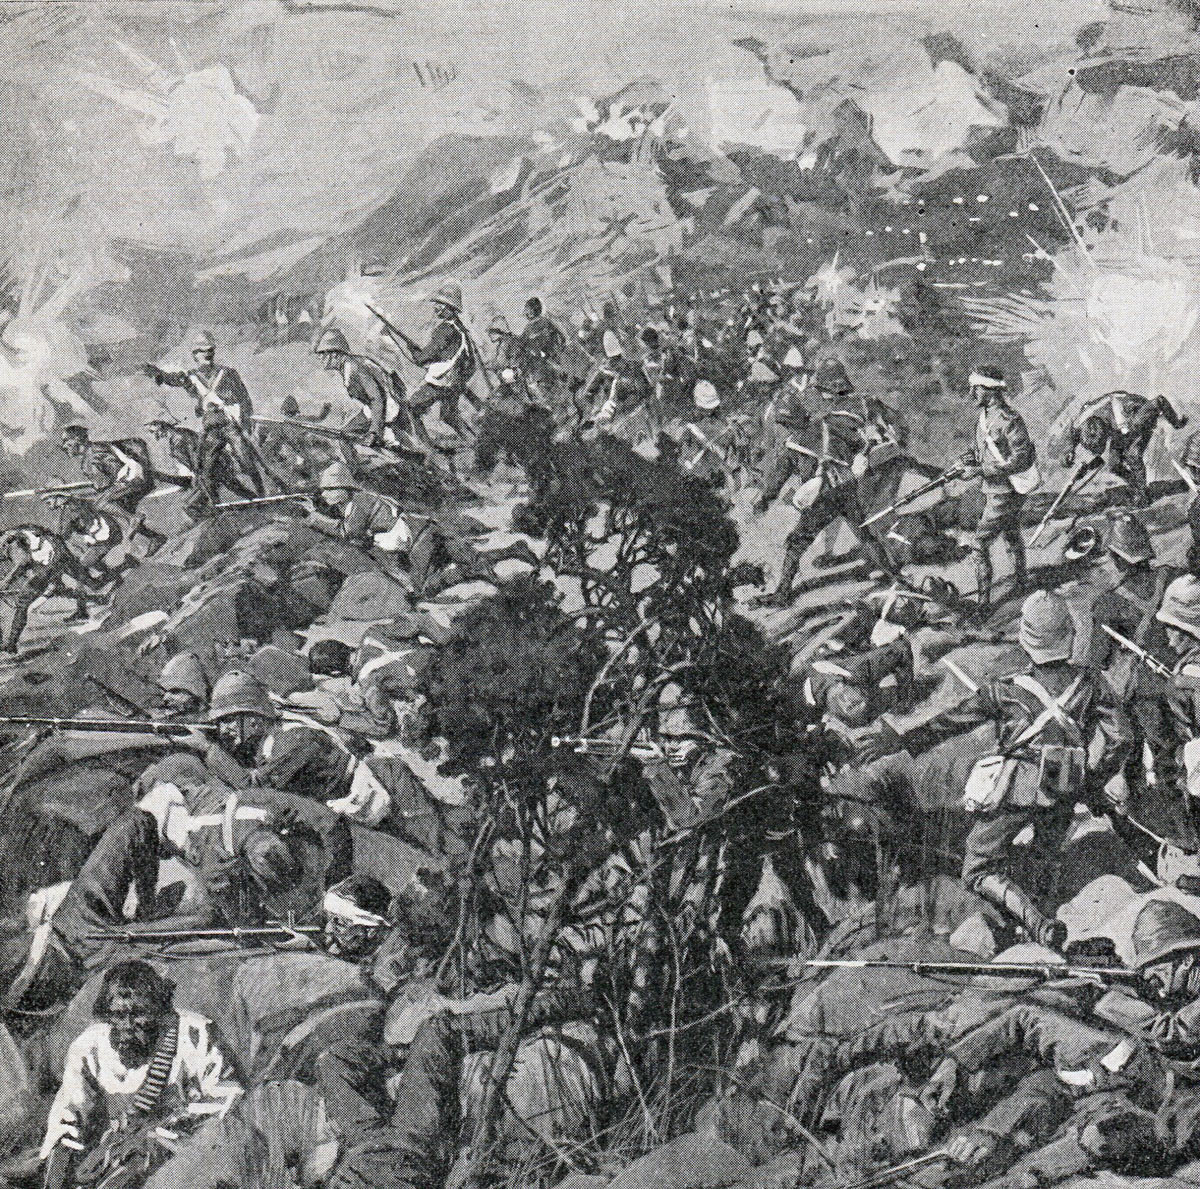 The Boer attack on Wagon Hill: Siege of Ladysmith, 2nd November 1899 to 27th February 1900 in the Great Boer War